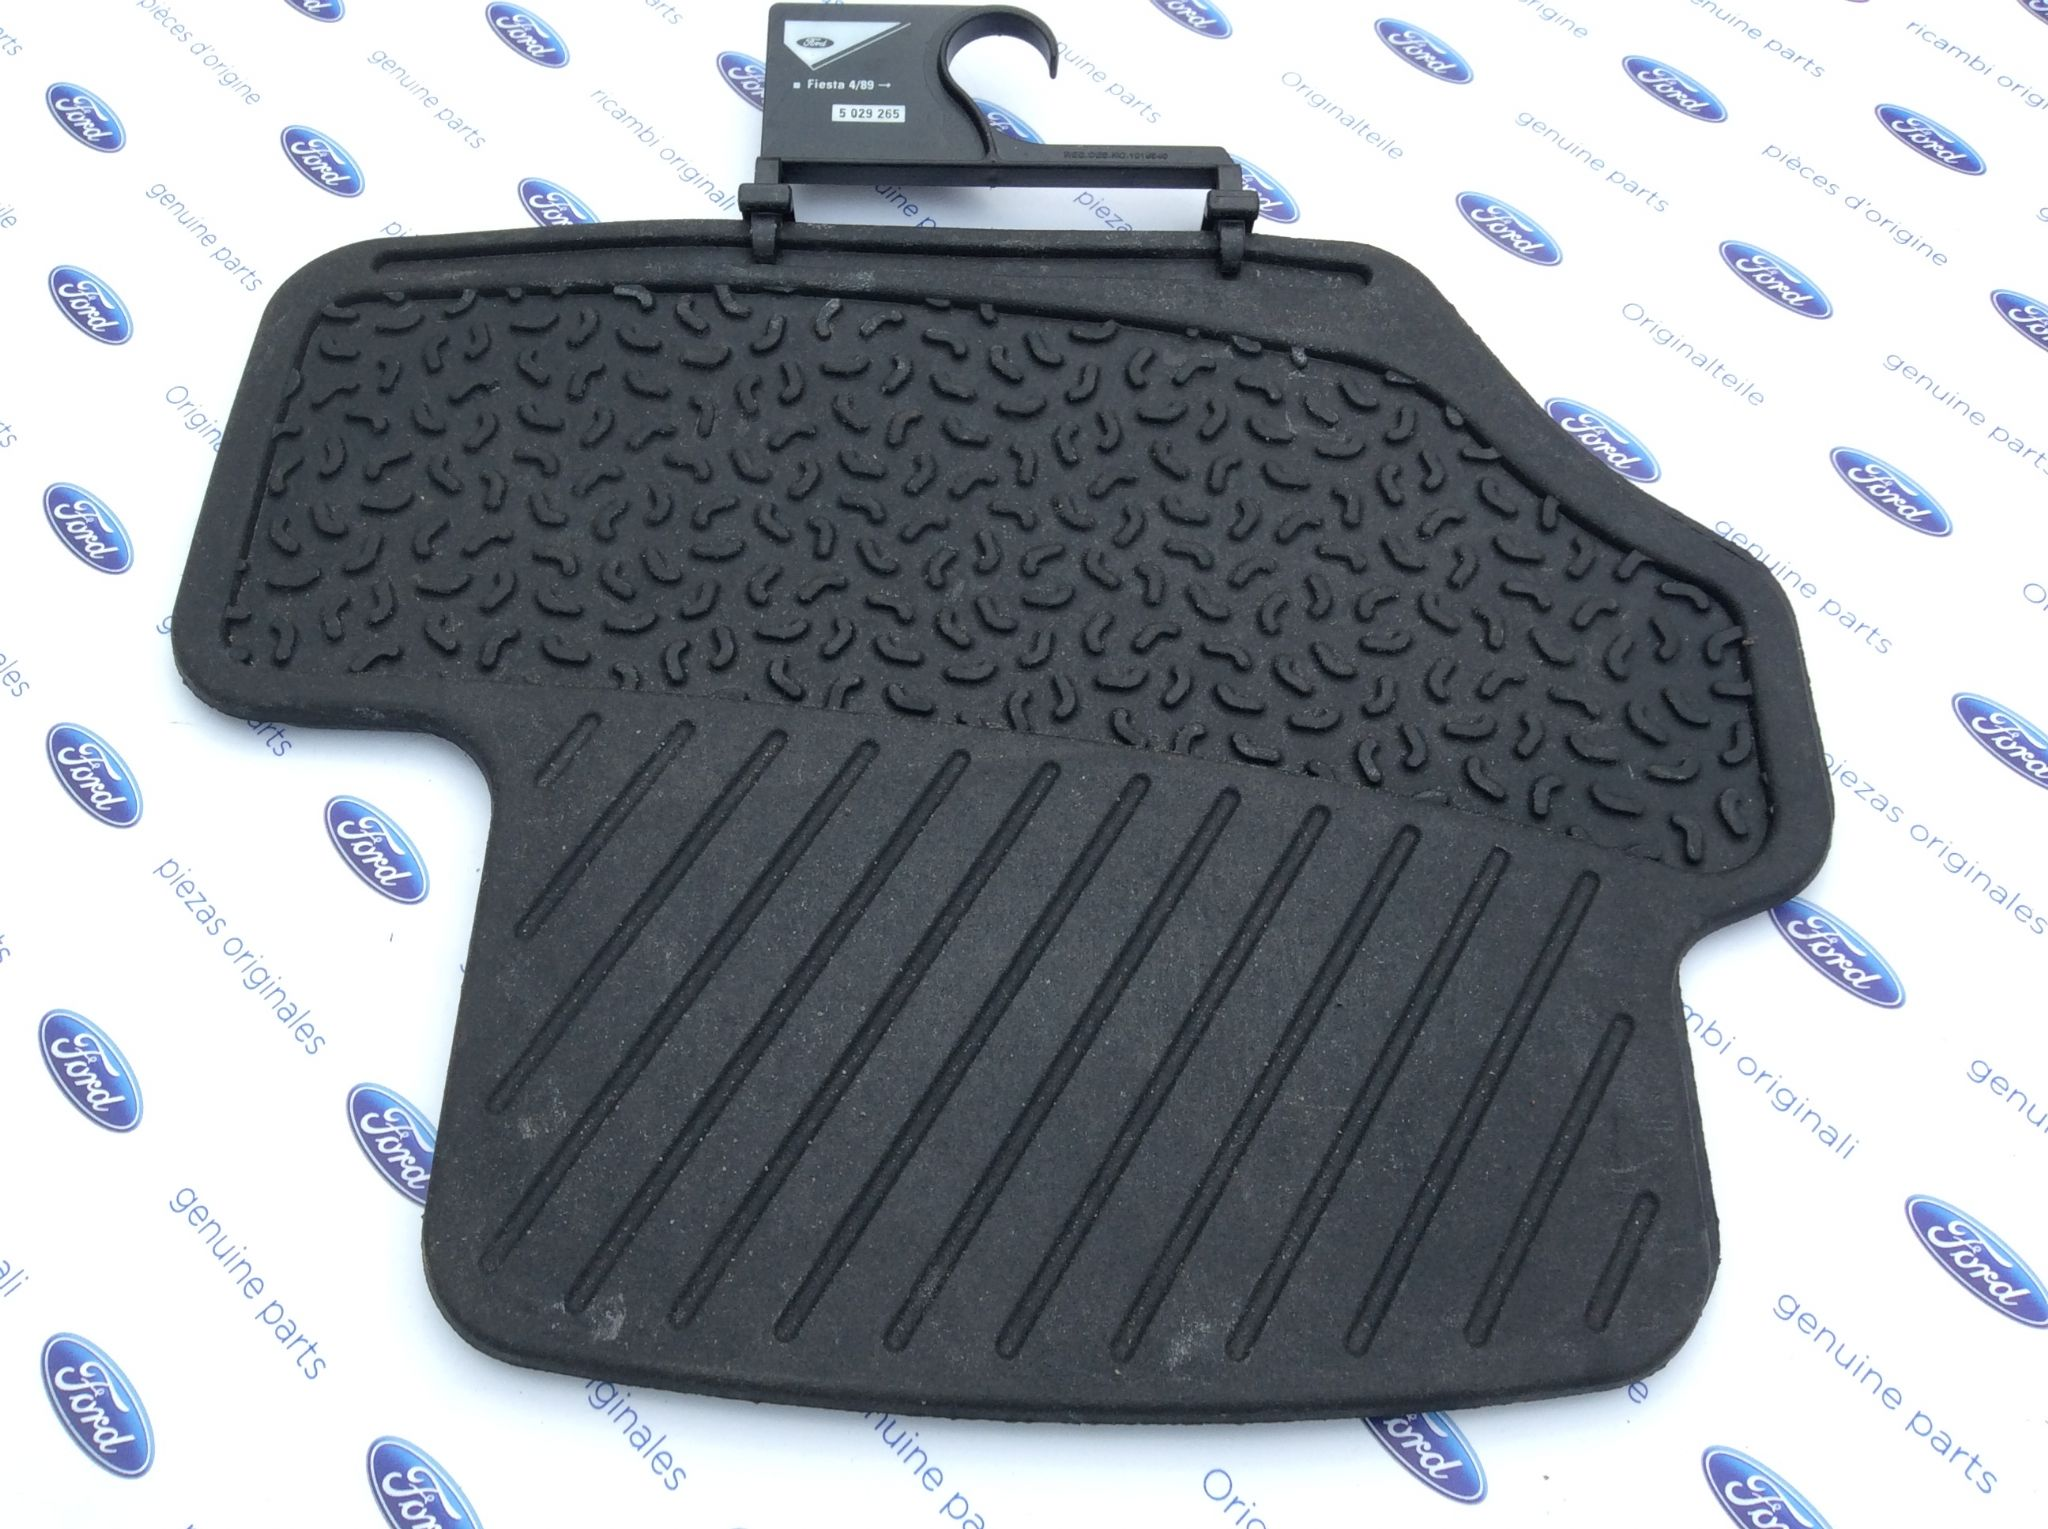 monstermats acc vw mats rubber gti accessories high mat monster canada online volkswagen original